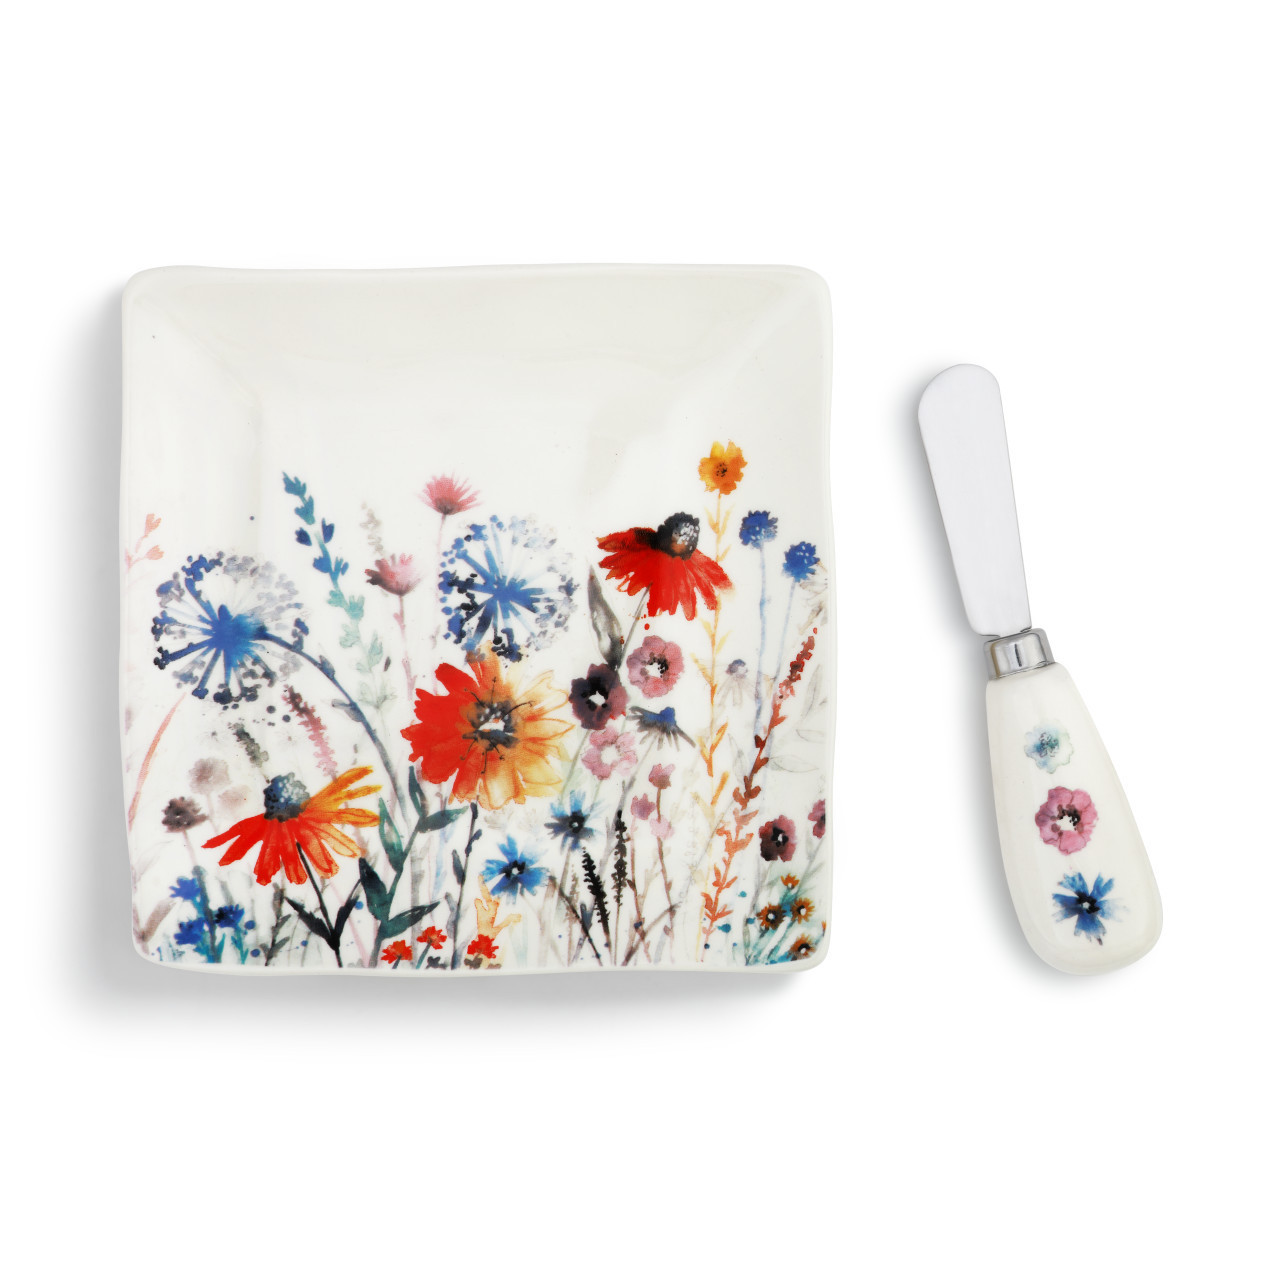 The spreader is crafted from stainless steel with a ceramic handle, while the plate is made of glazed stoneware. Featuring prominently on both items is a red and blue floral scene reminiscent of a meadow in the summertime.